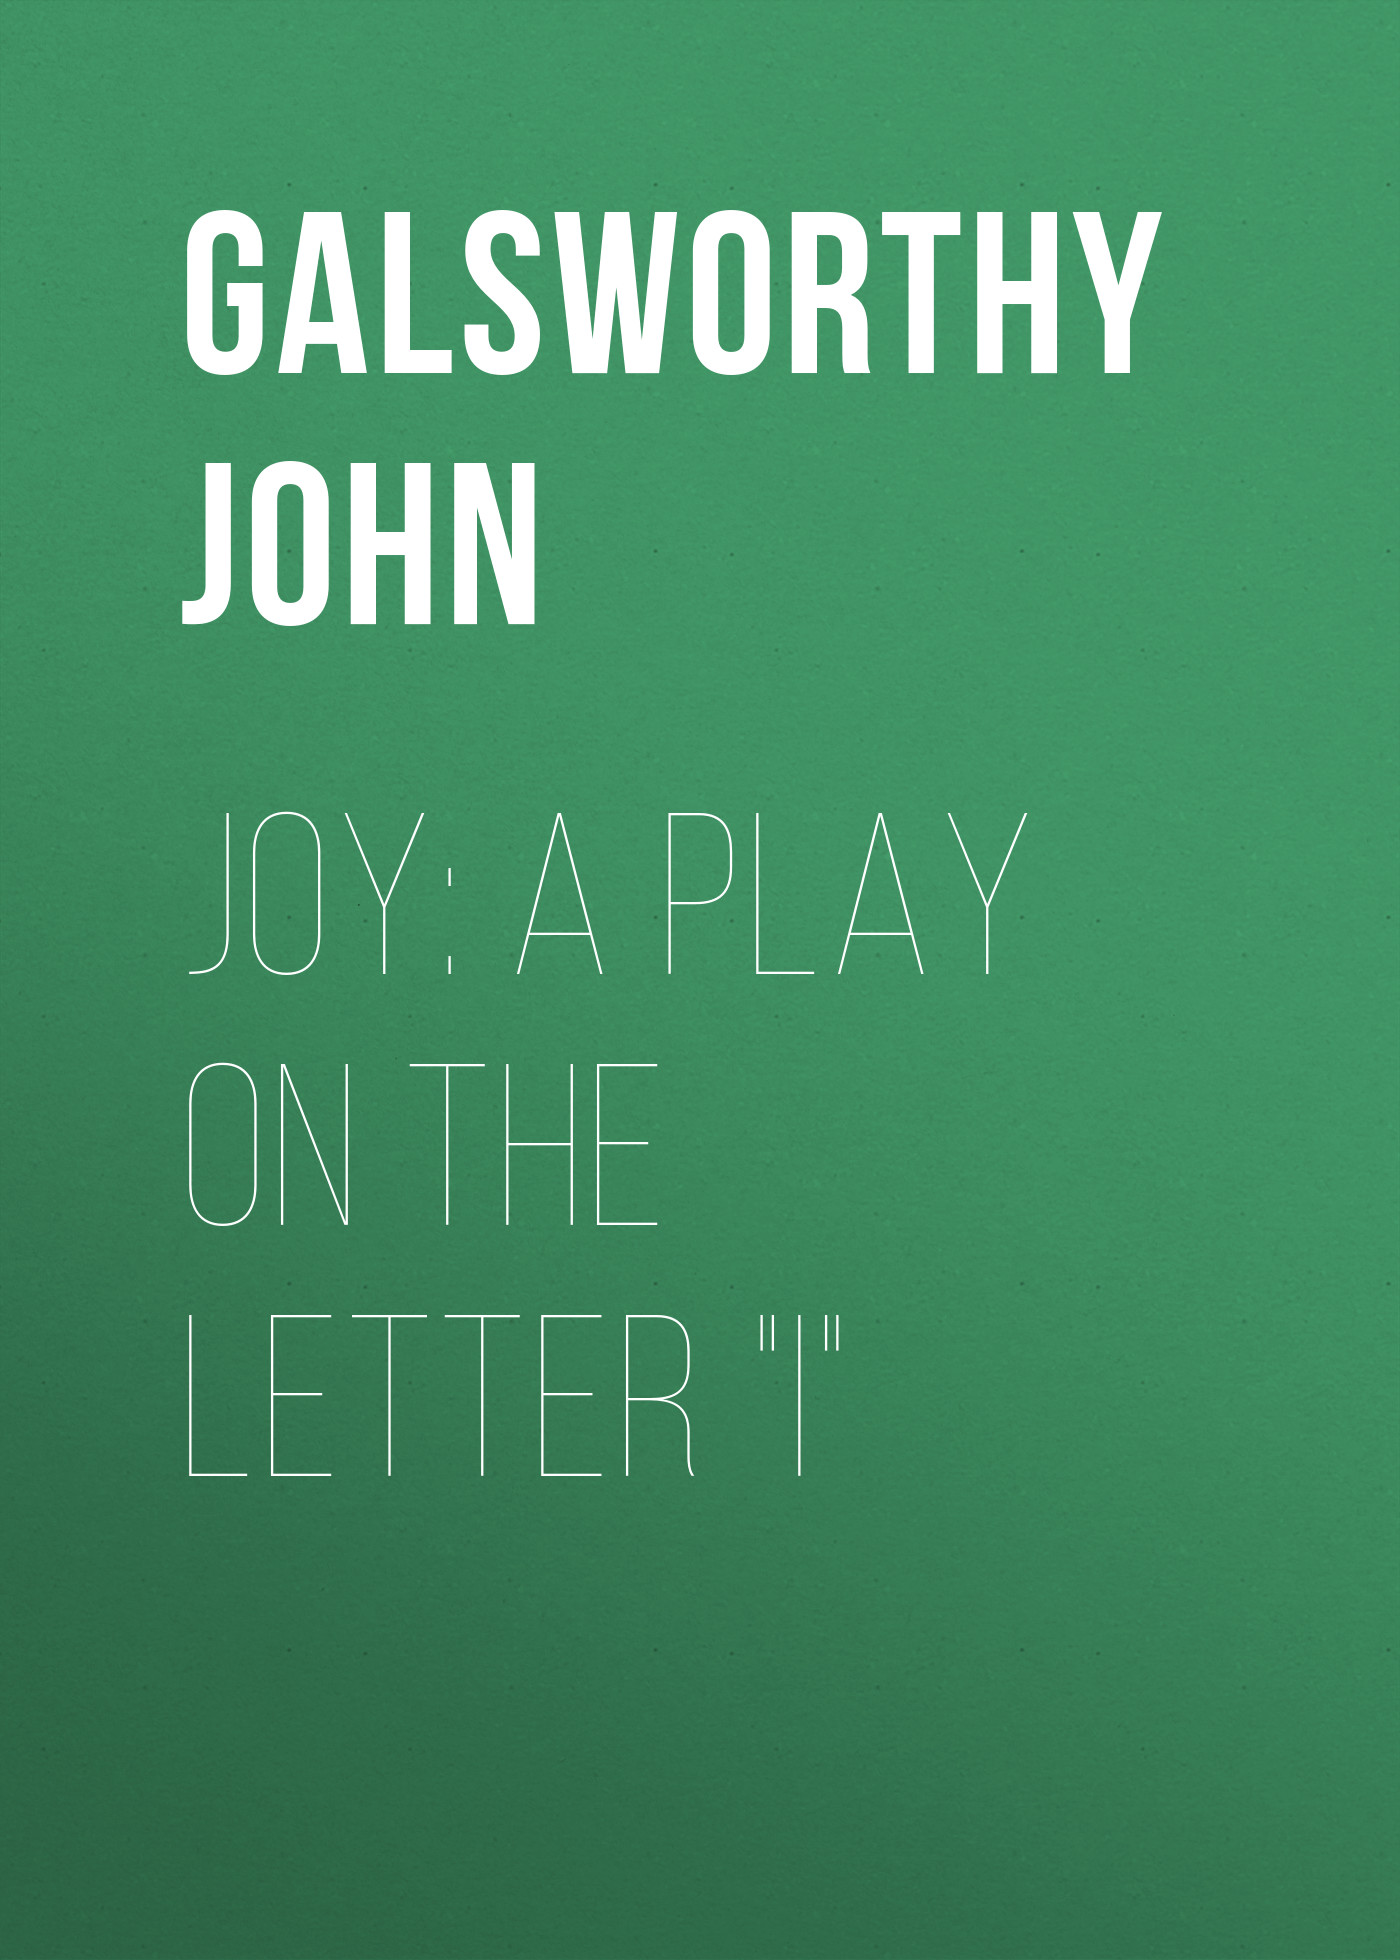 Galsworthy John Joy: A Play on the Letter